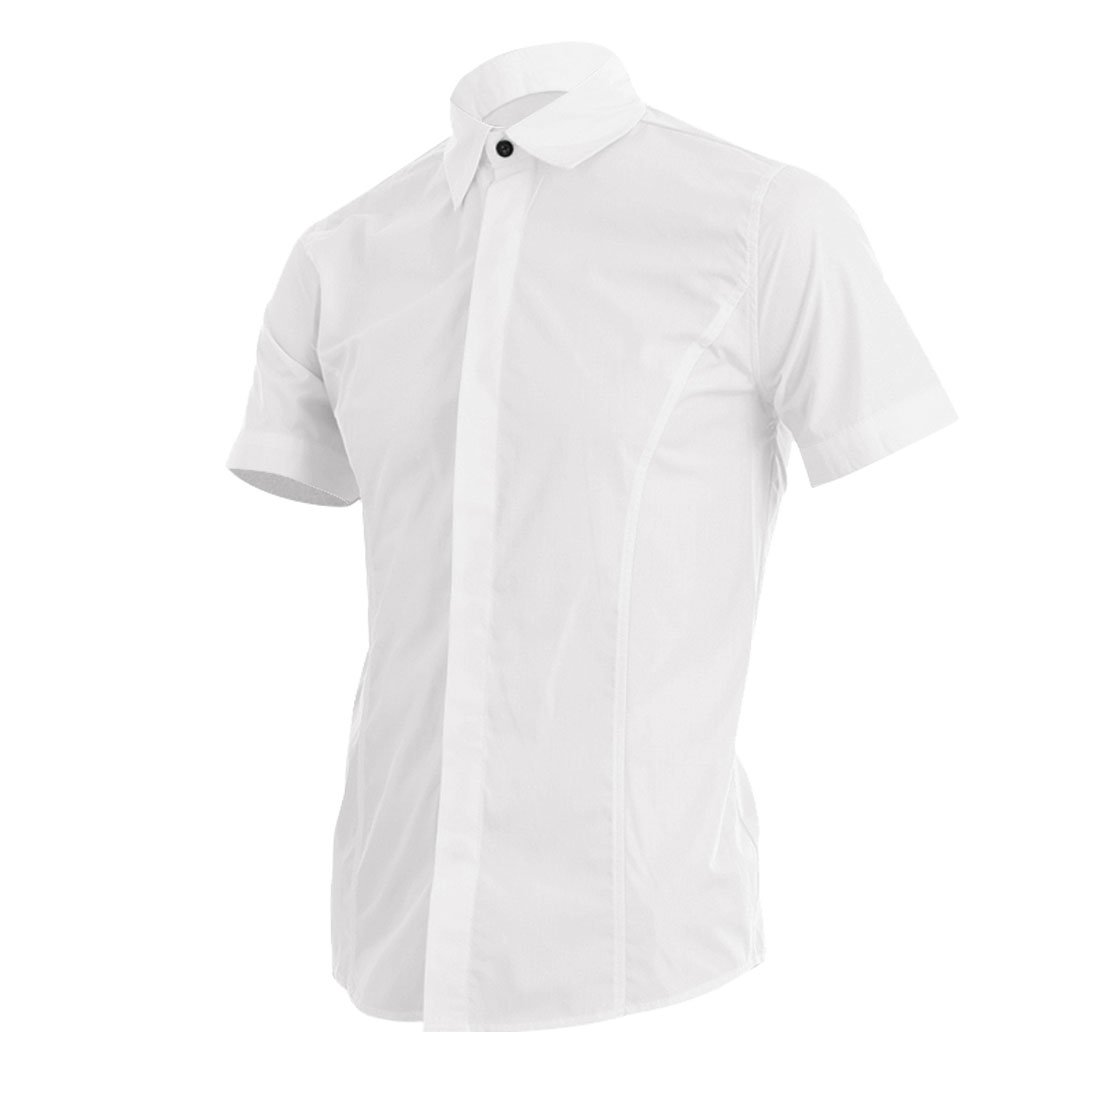 Men Single Breasted Buttoned Cuff Spring Stylish Top White M